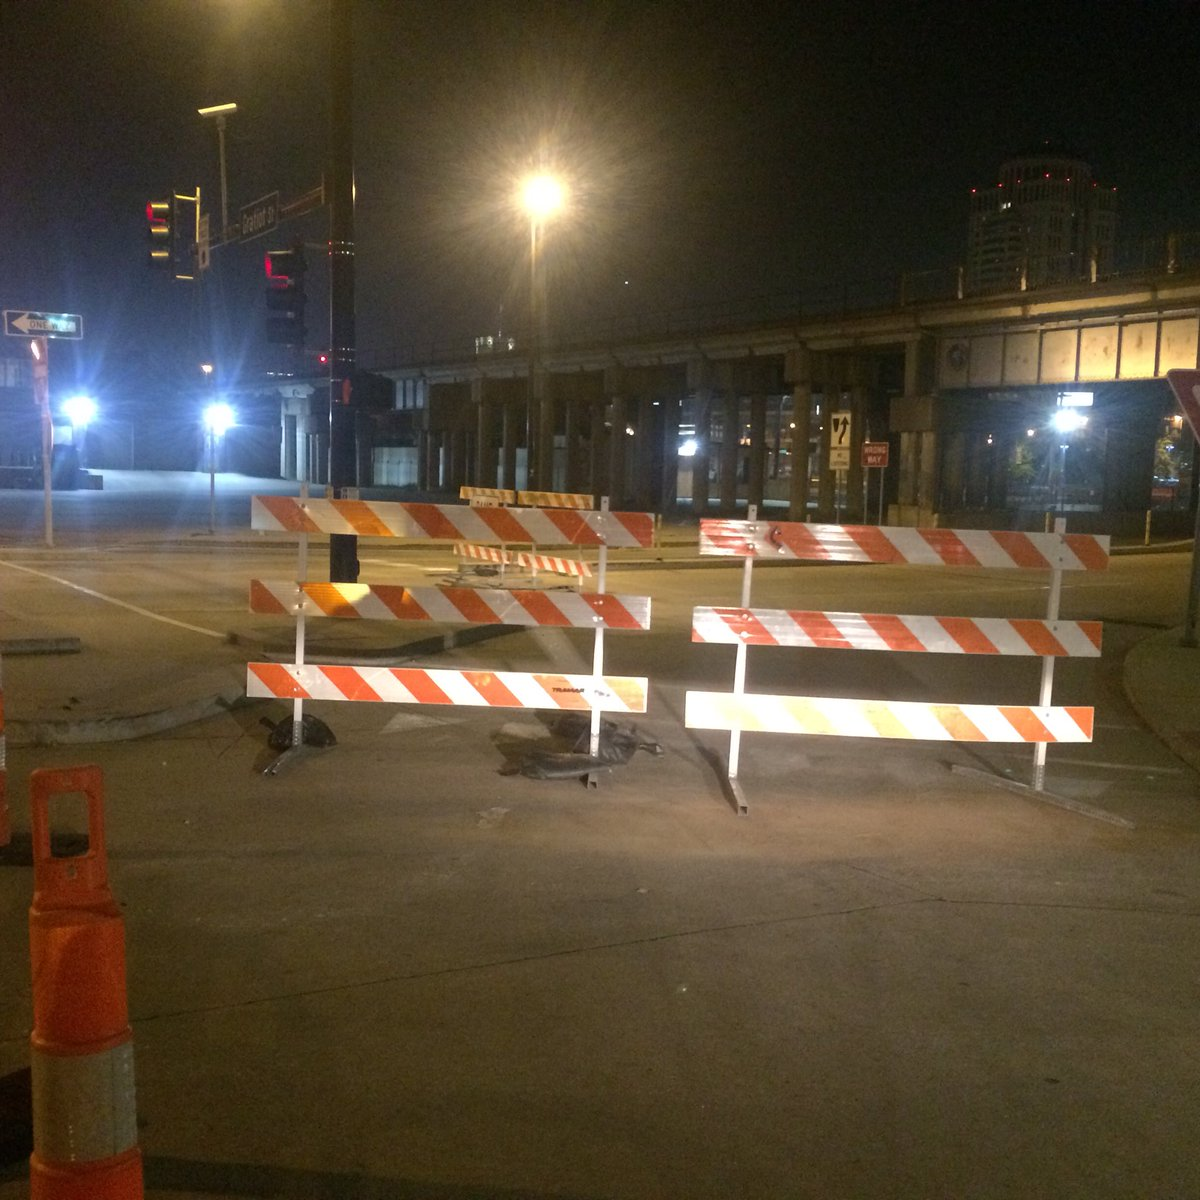 Ramp from Sixth Street to the Poplar Street Bridge remains closed. @MoDOT had hoped to have all construction on 64E through downtown #STL wrapped up by 5 AM. Looks like it's running late. Tune into #n4tm @LauraKHettiger for updates as you plan your morning drive.<br>http://pic.twitter.com/tcJKxWqYFC